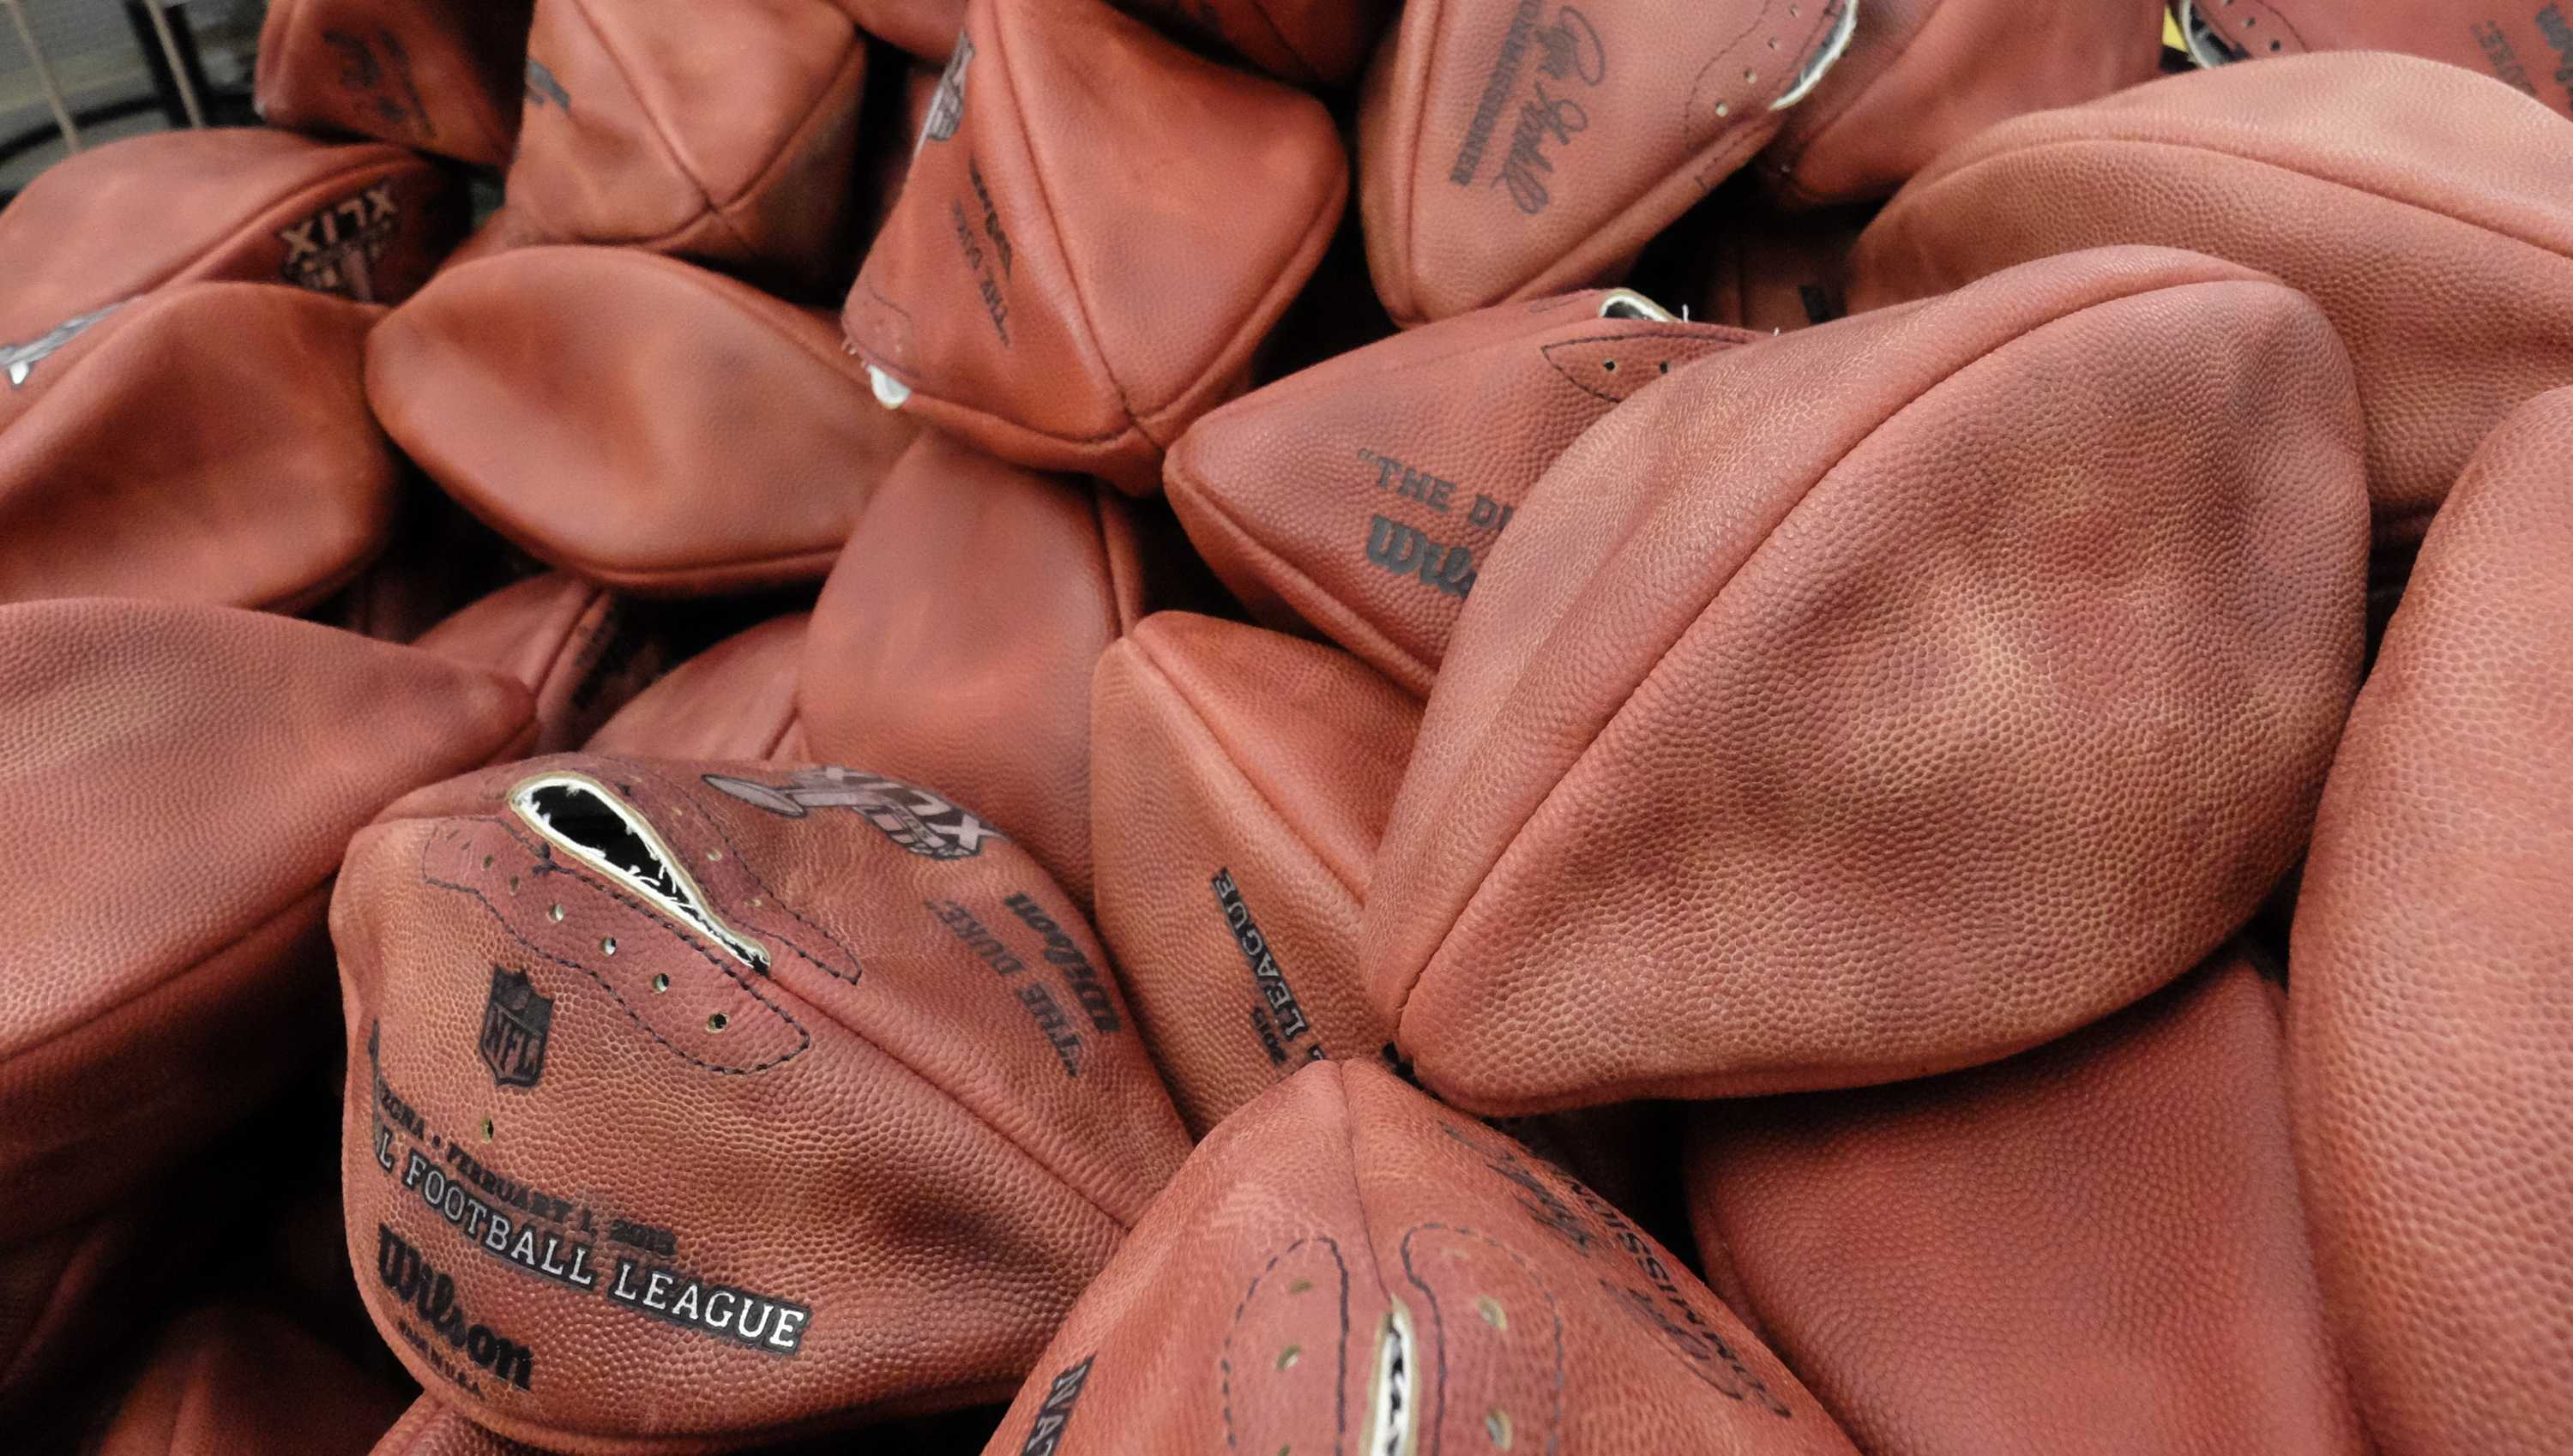 Deflated, underinflated footballs